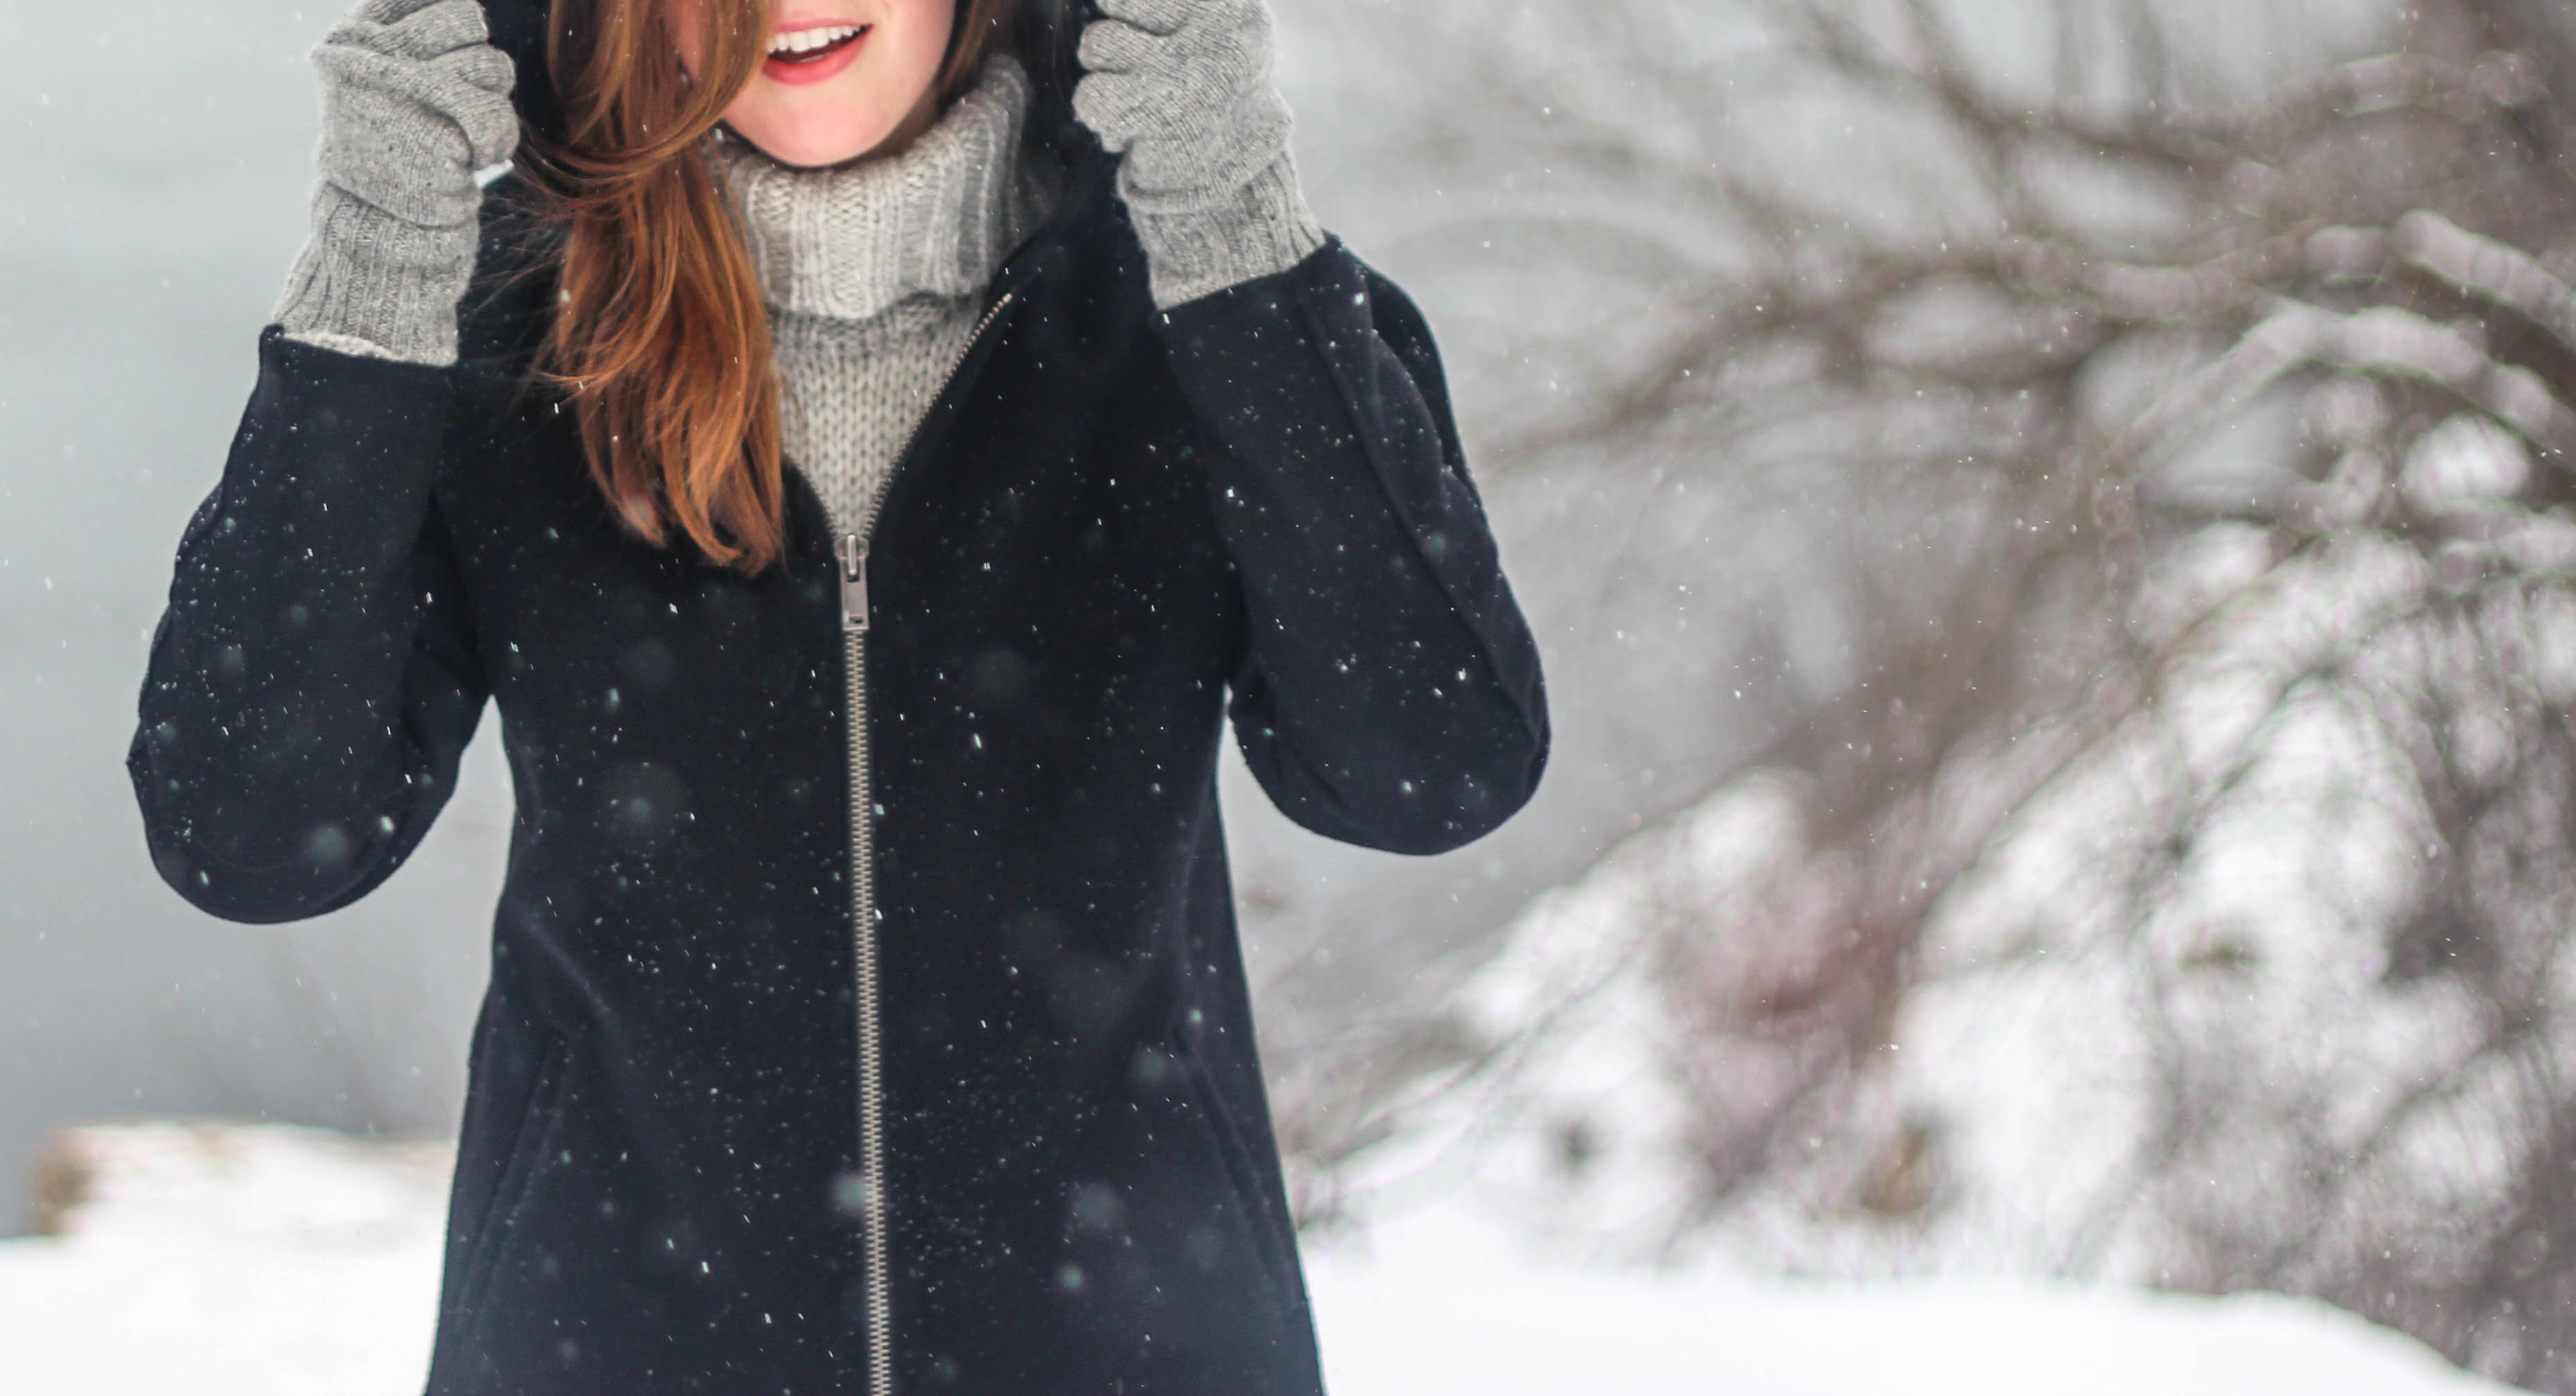 How to Keep Your Skin Hydrated in the Winter